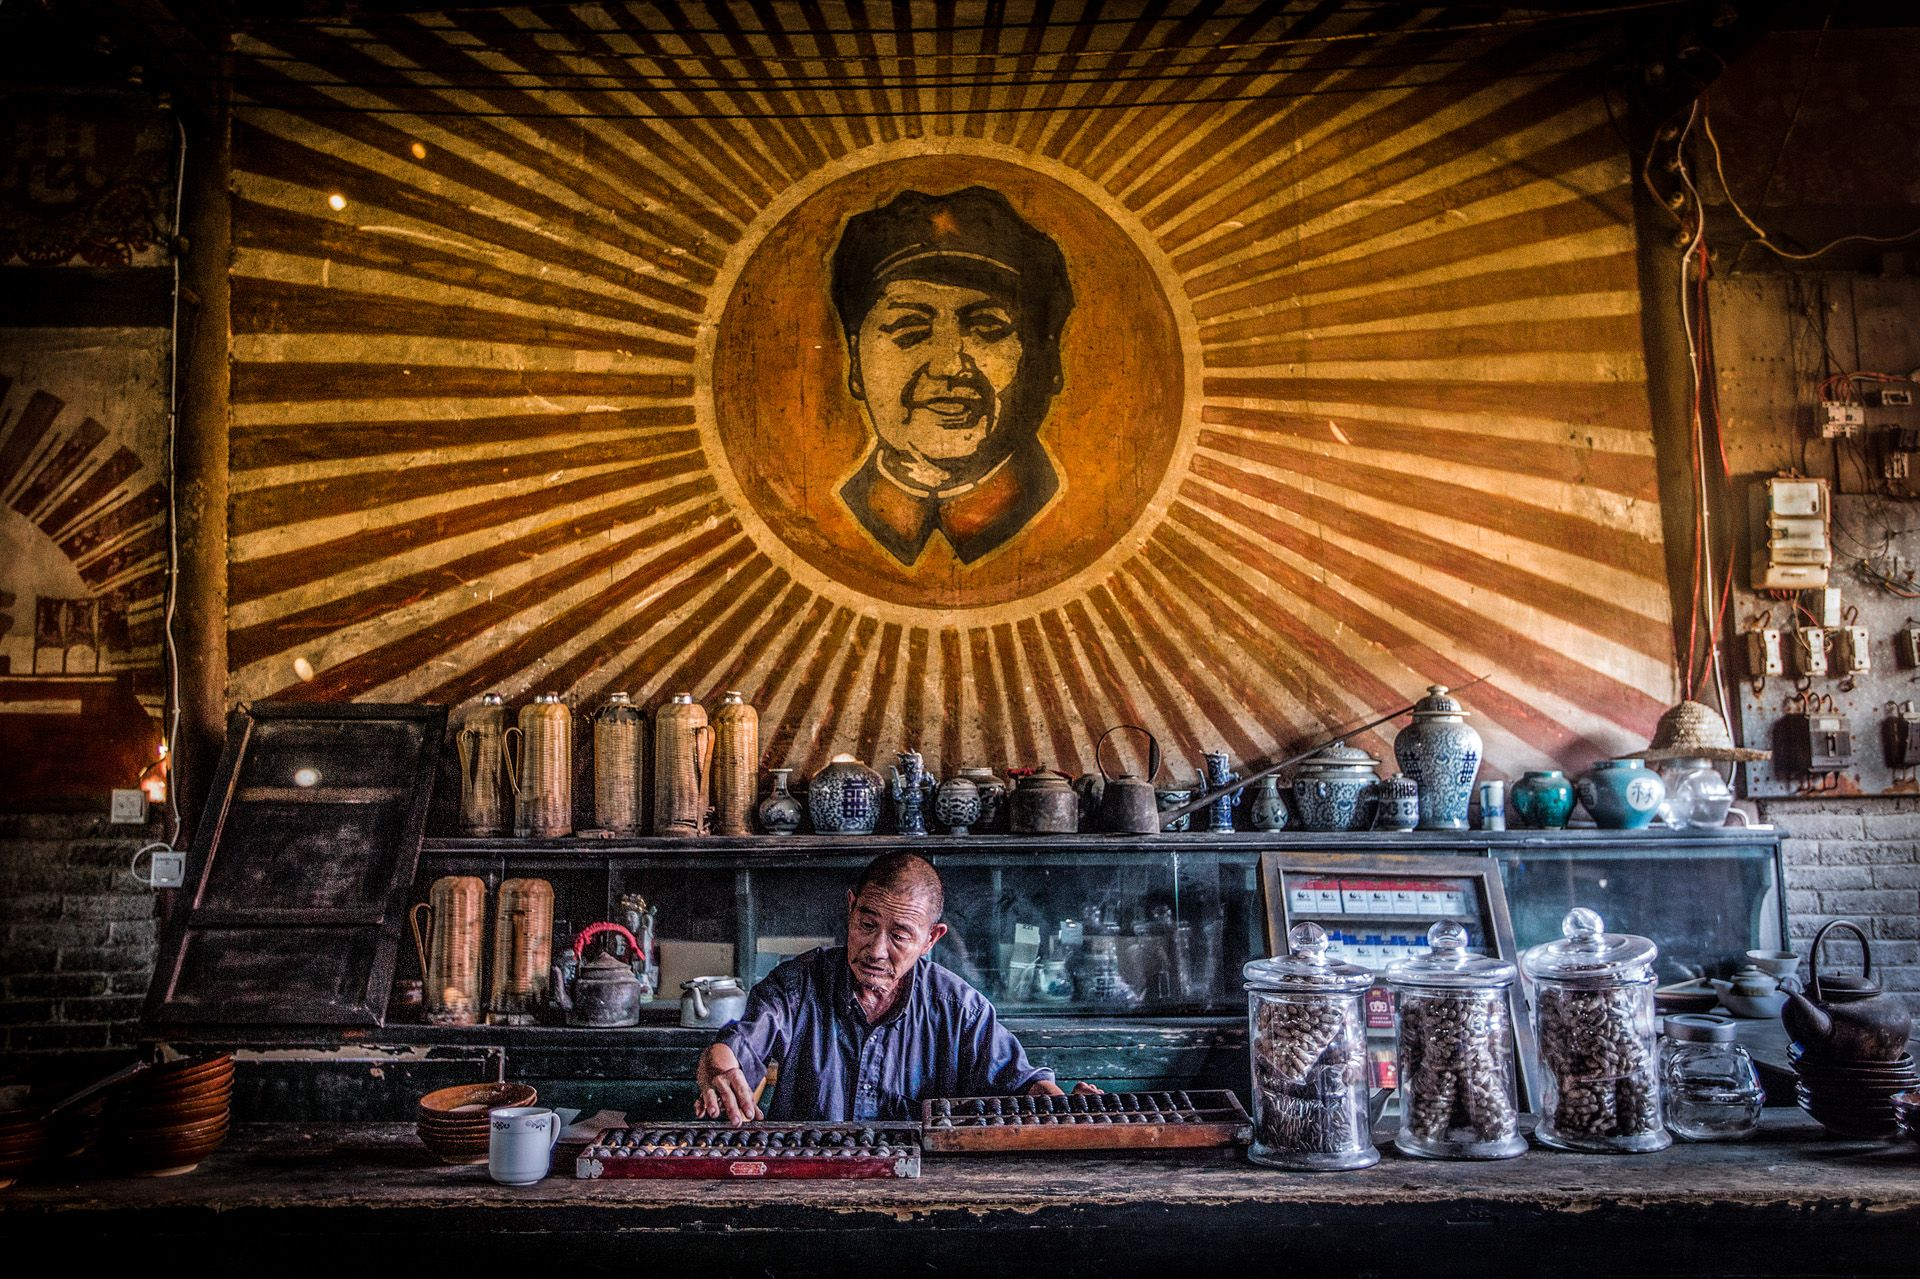 Man running a teahouse